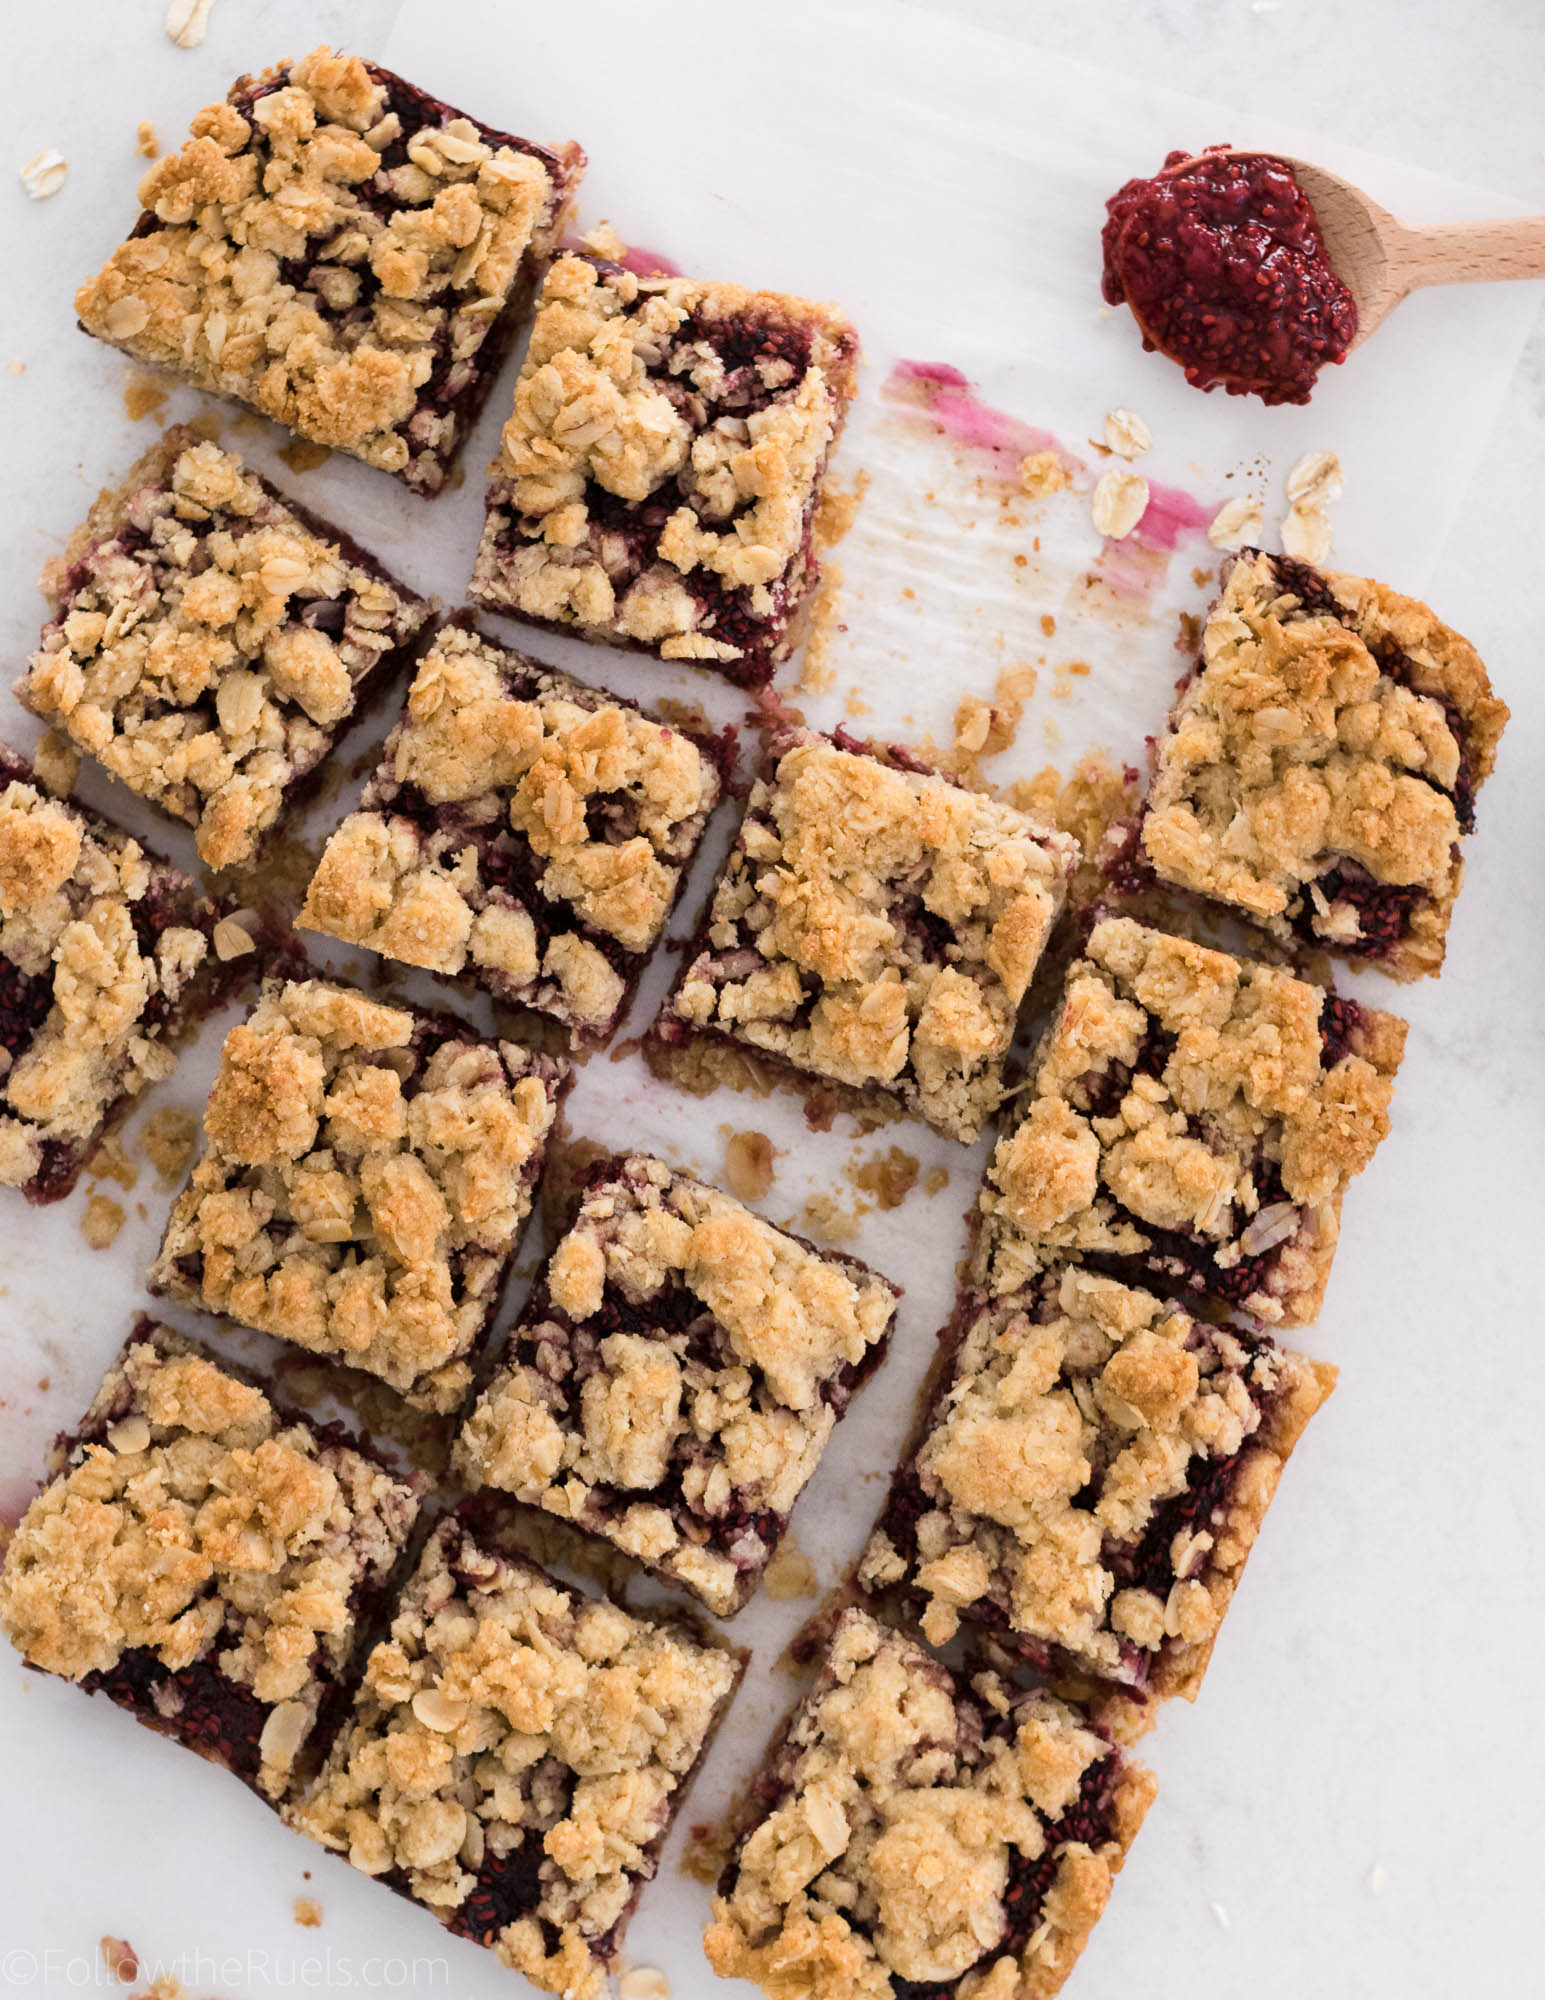 Raspberry-Oatmeal-Bars-12.jpg